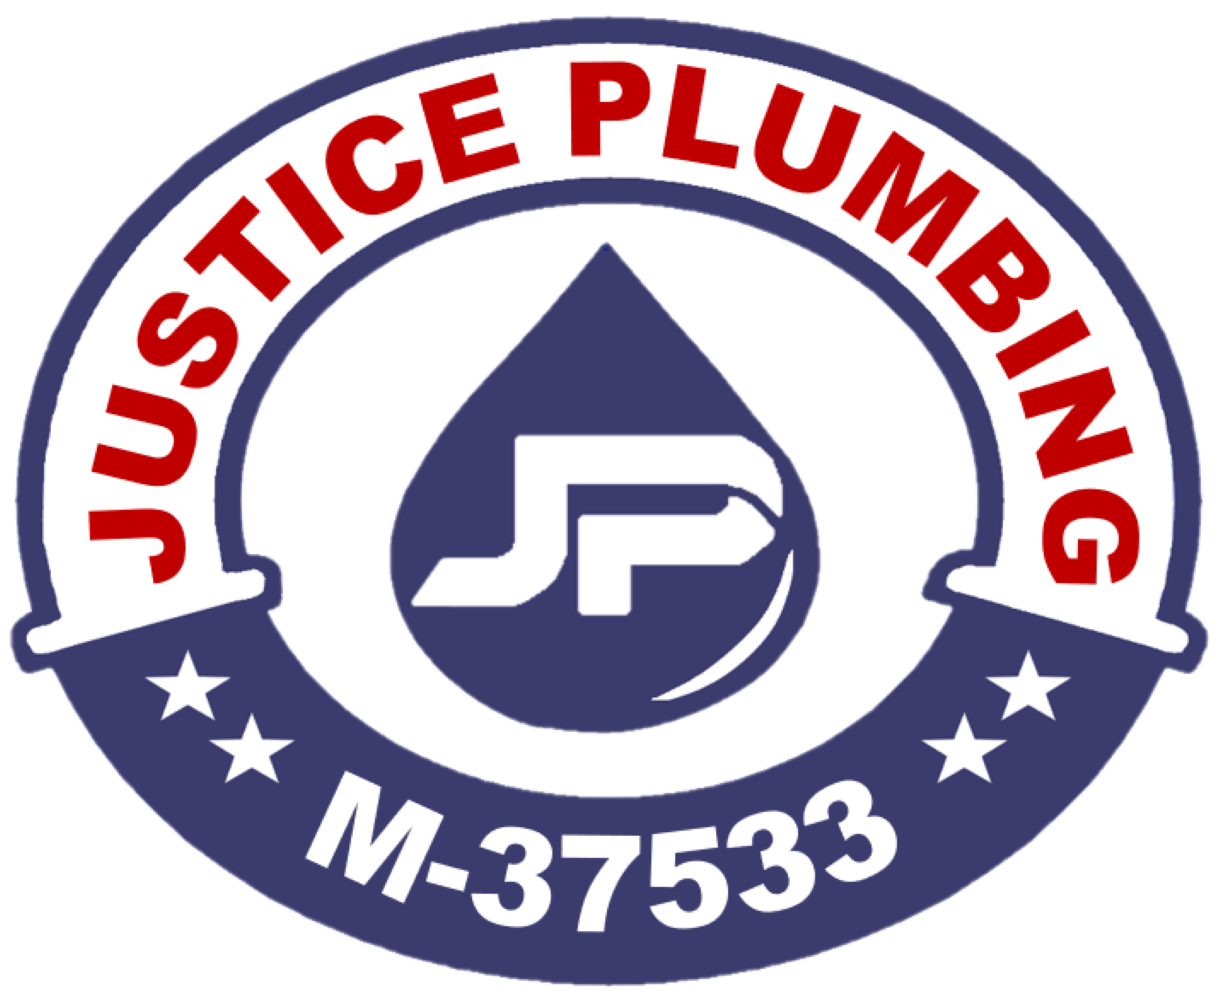 Justice Plumbing Company Store